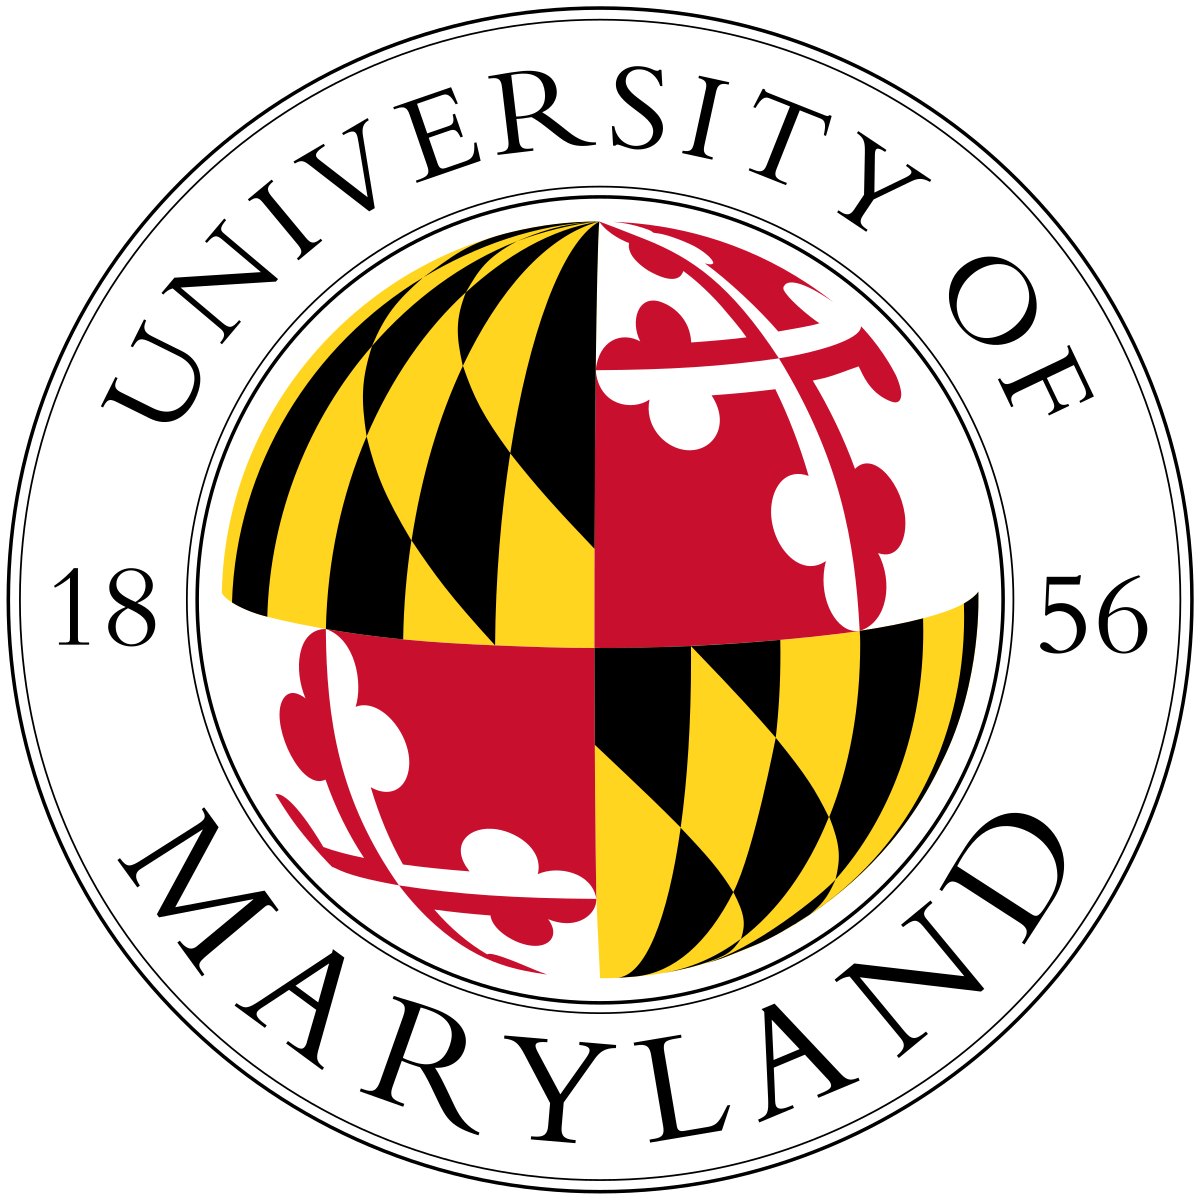 MicroMasters Program in MBA Core Curriculum by University of Maryland [Online, 1 Year]: Enroll Now